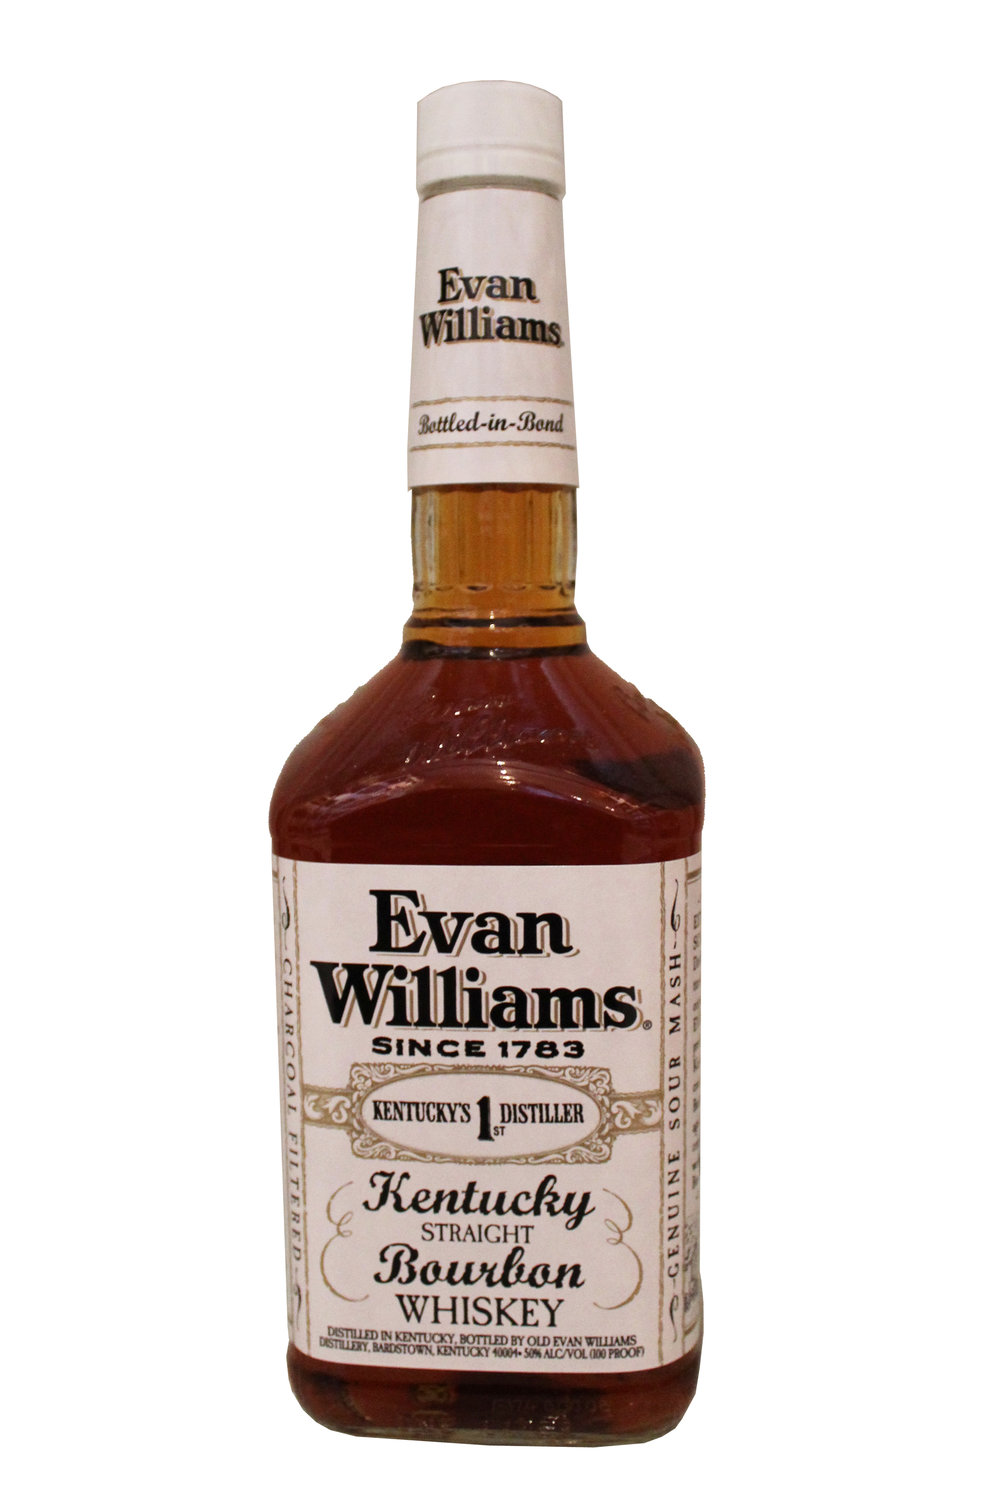 Bourbon Whiskey Evan Williams, Kentucky